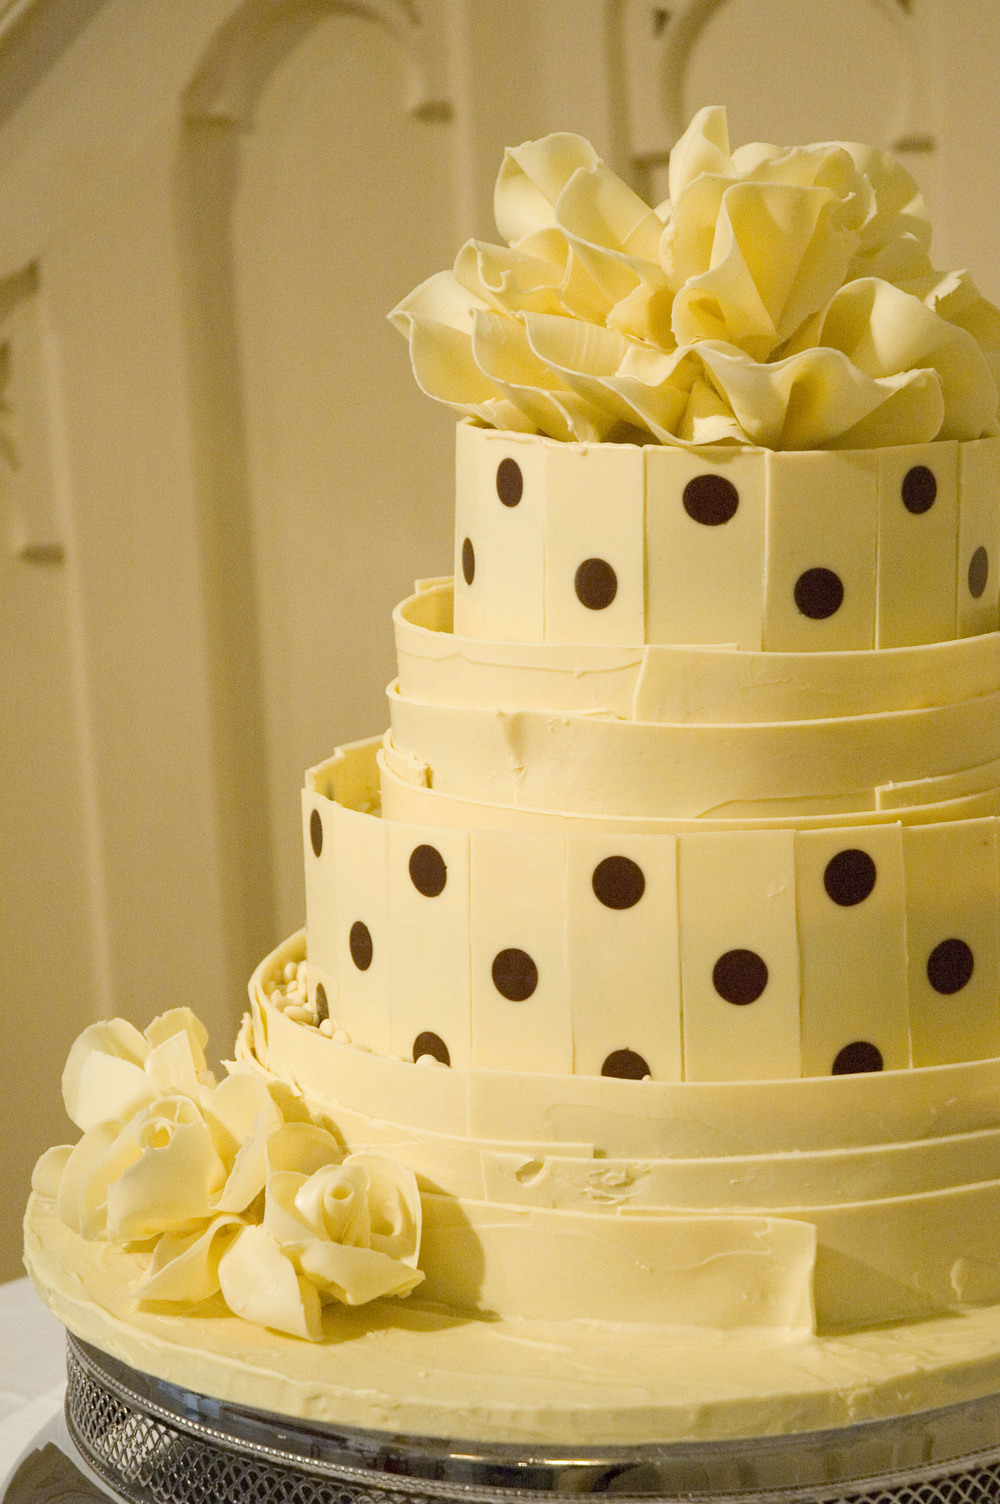 spotty white chololate wedding cake 03.jpg